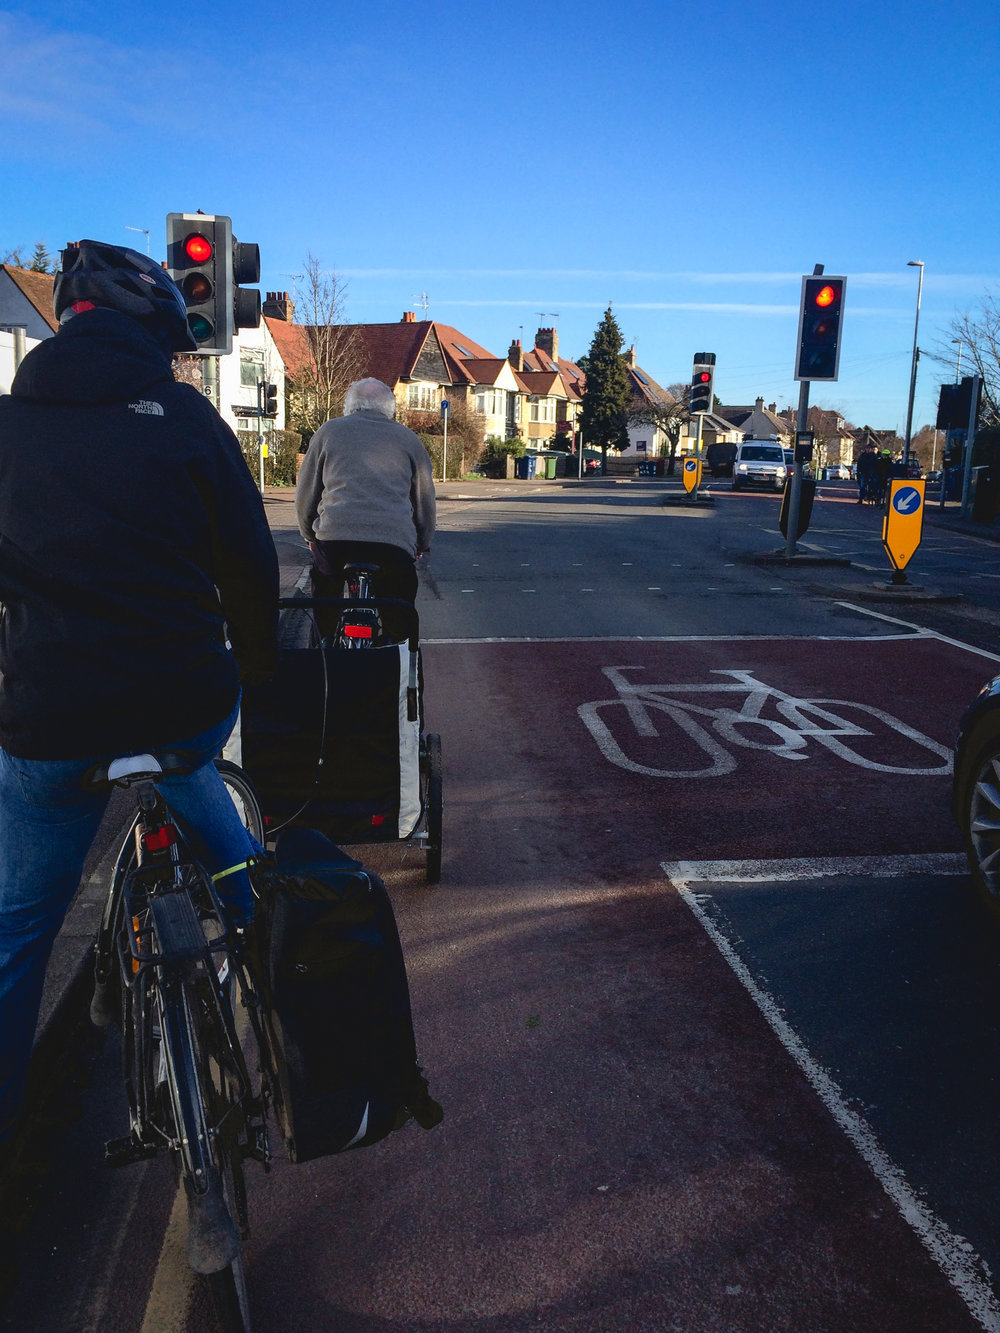 Cambridge has wonderful bike lanes, making cycling that much easier. But what truly makes cycling in Cambridge better is that there are so many people that bike everywhere. Ashley calls it 'power in numbers'.